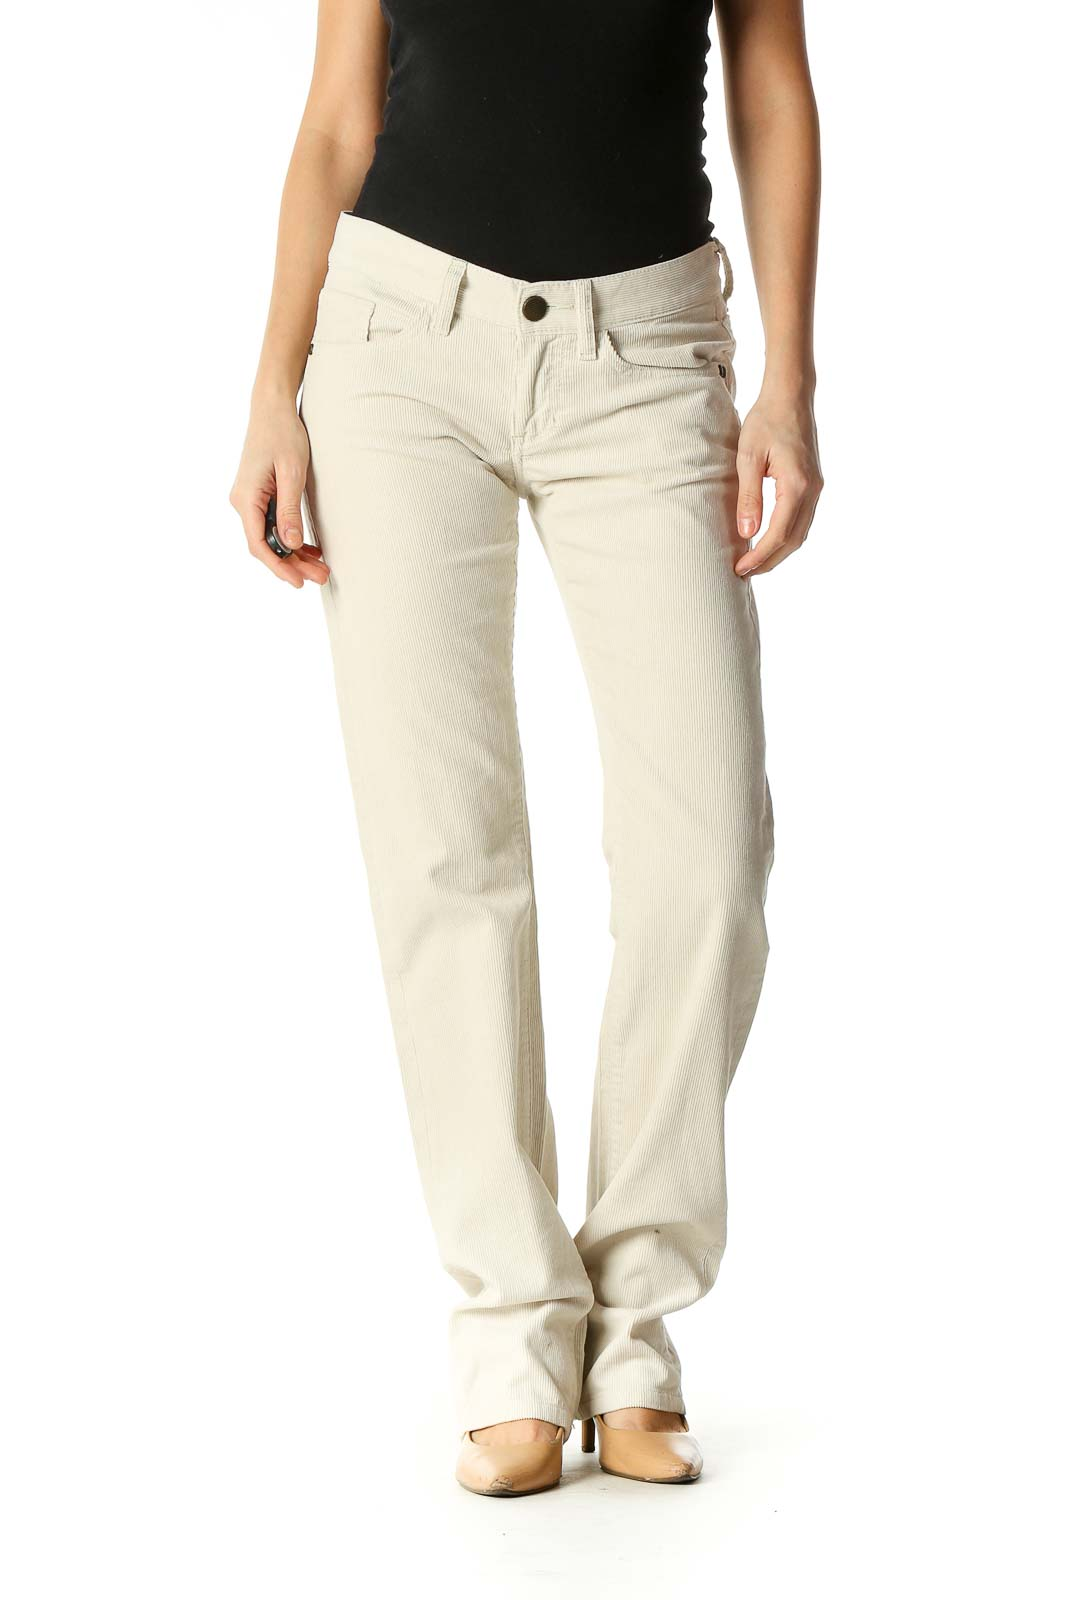 Beige Casual Straight Leg Jeans Front